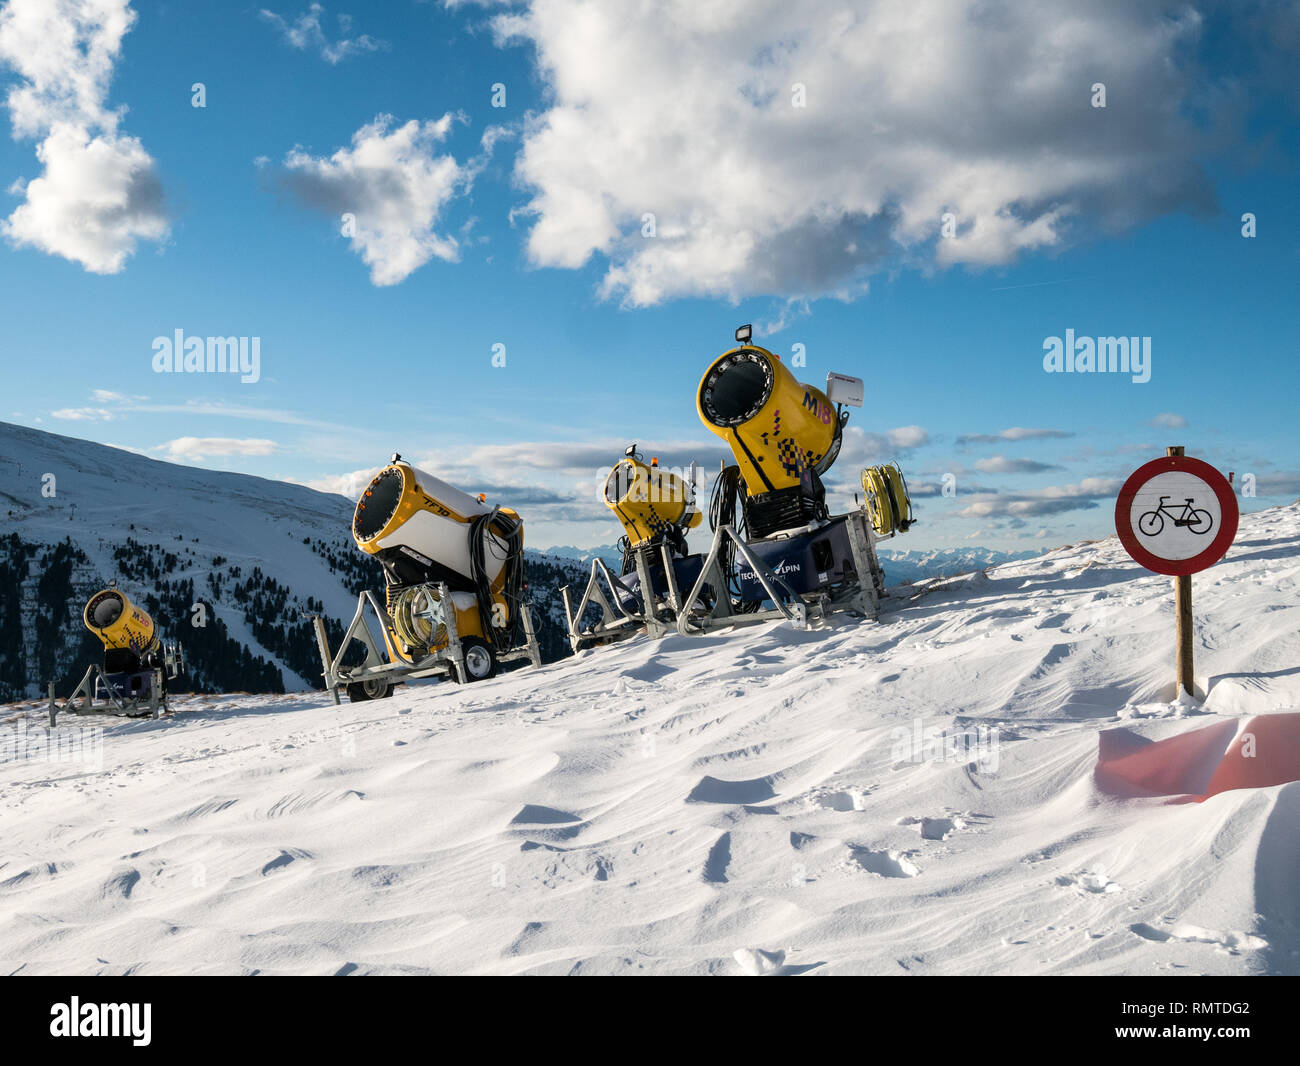 Snow cannons and 'no cycling' sign on Passo Feudo, Dolomiti, Italy - Stock Image